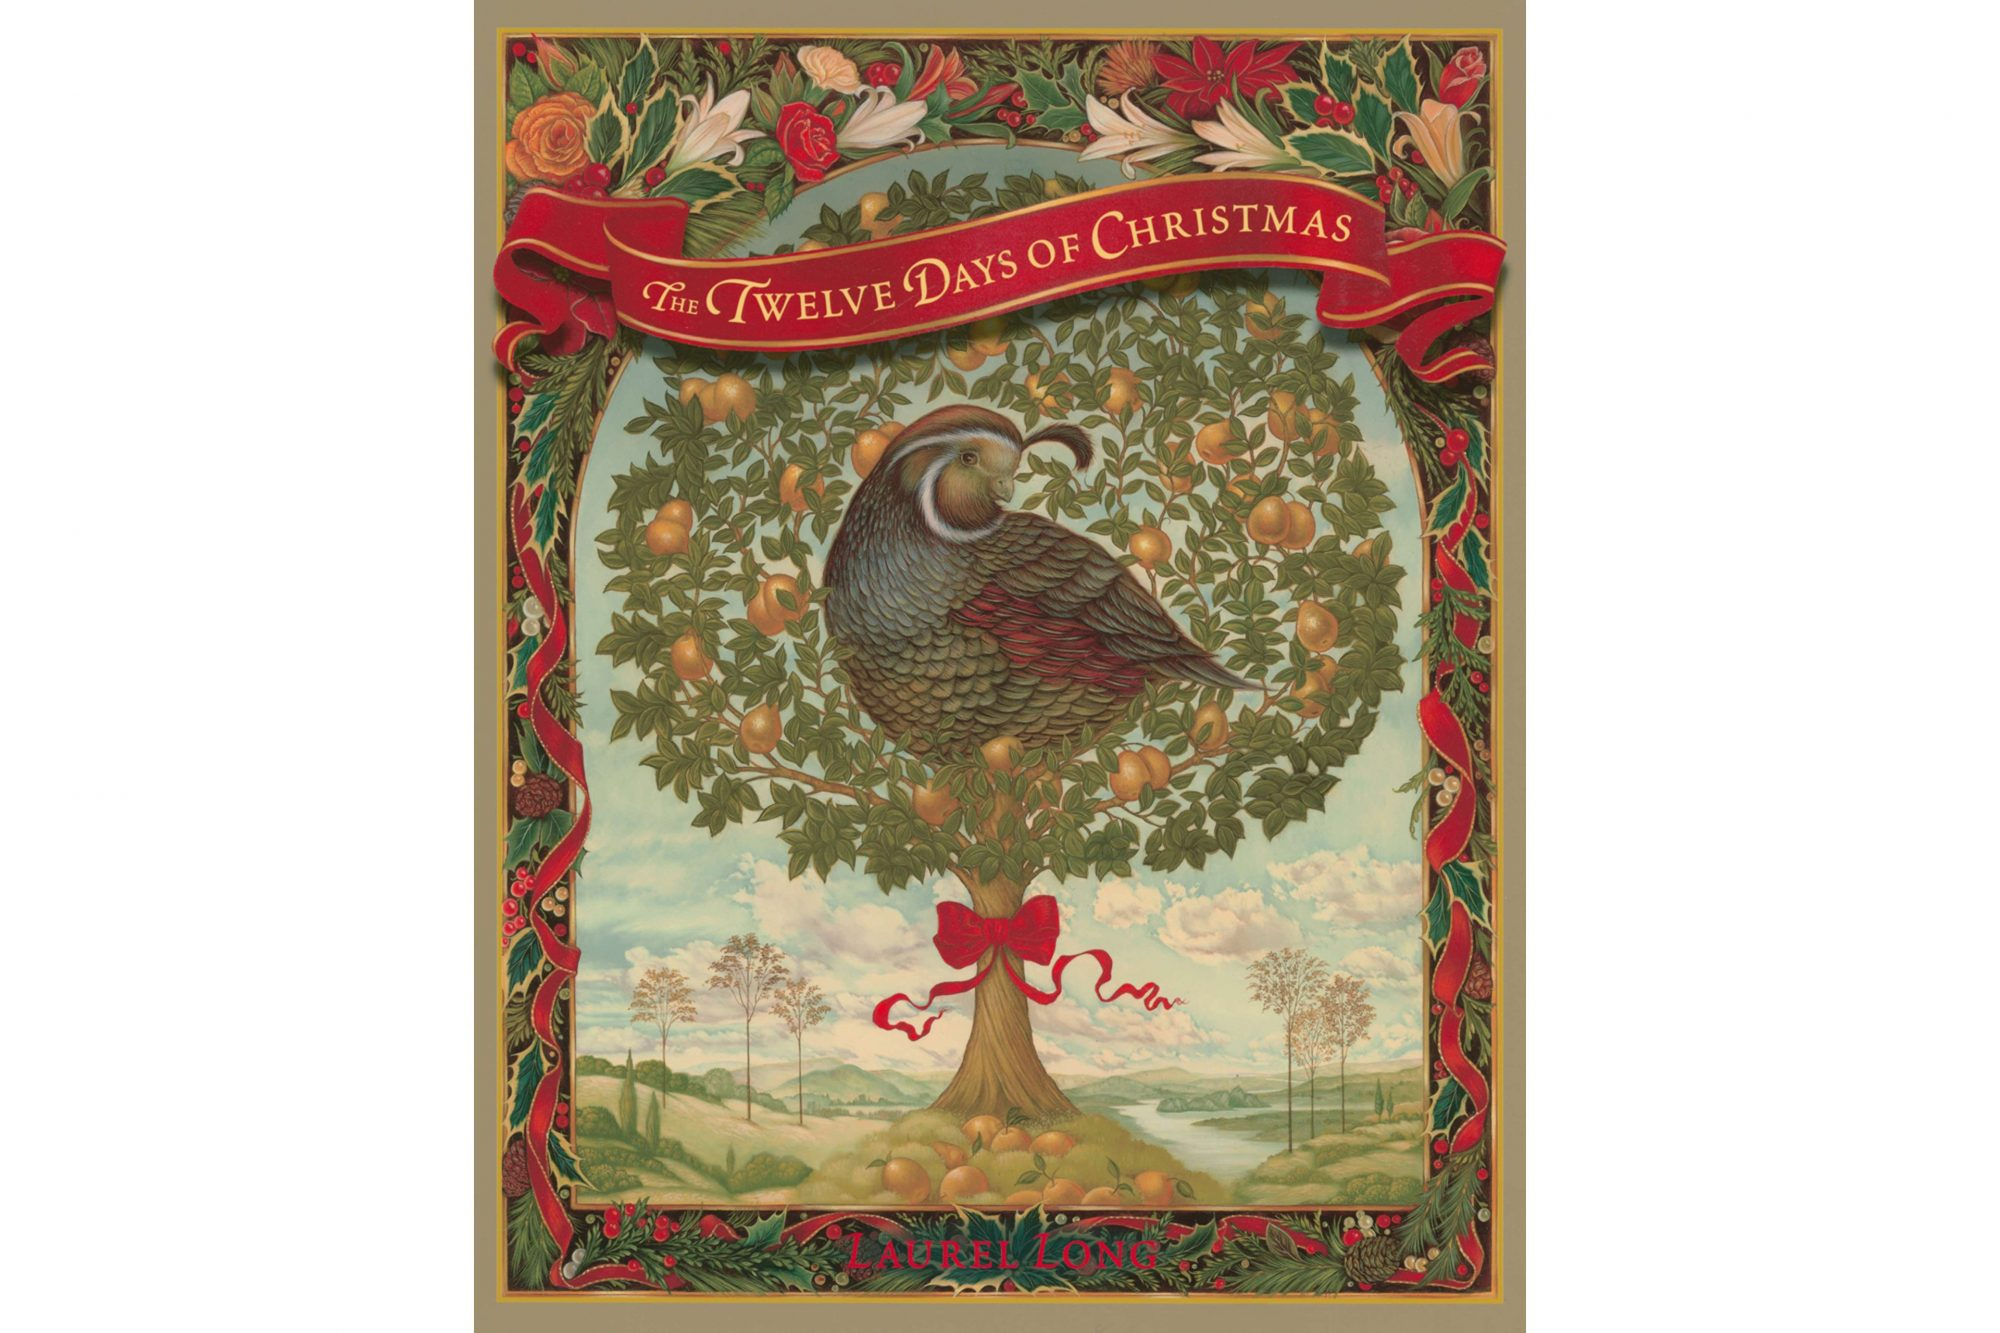 The Twelve Days of Christmas, by Laurel Long